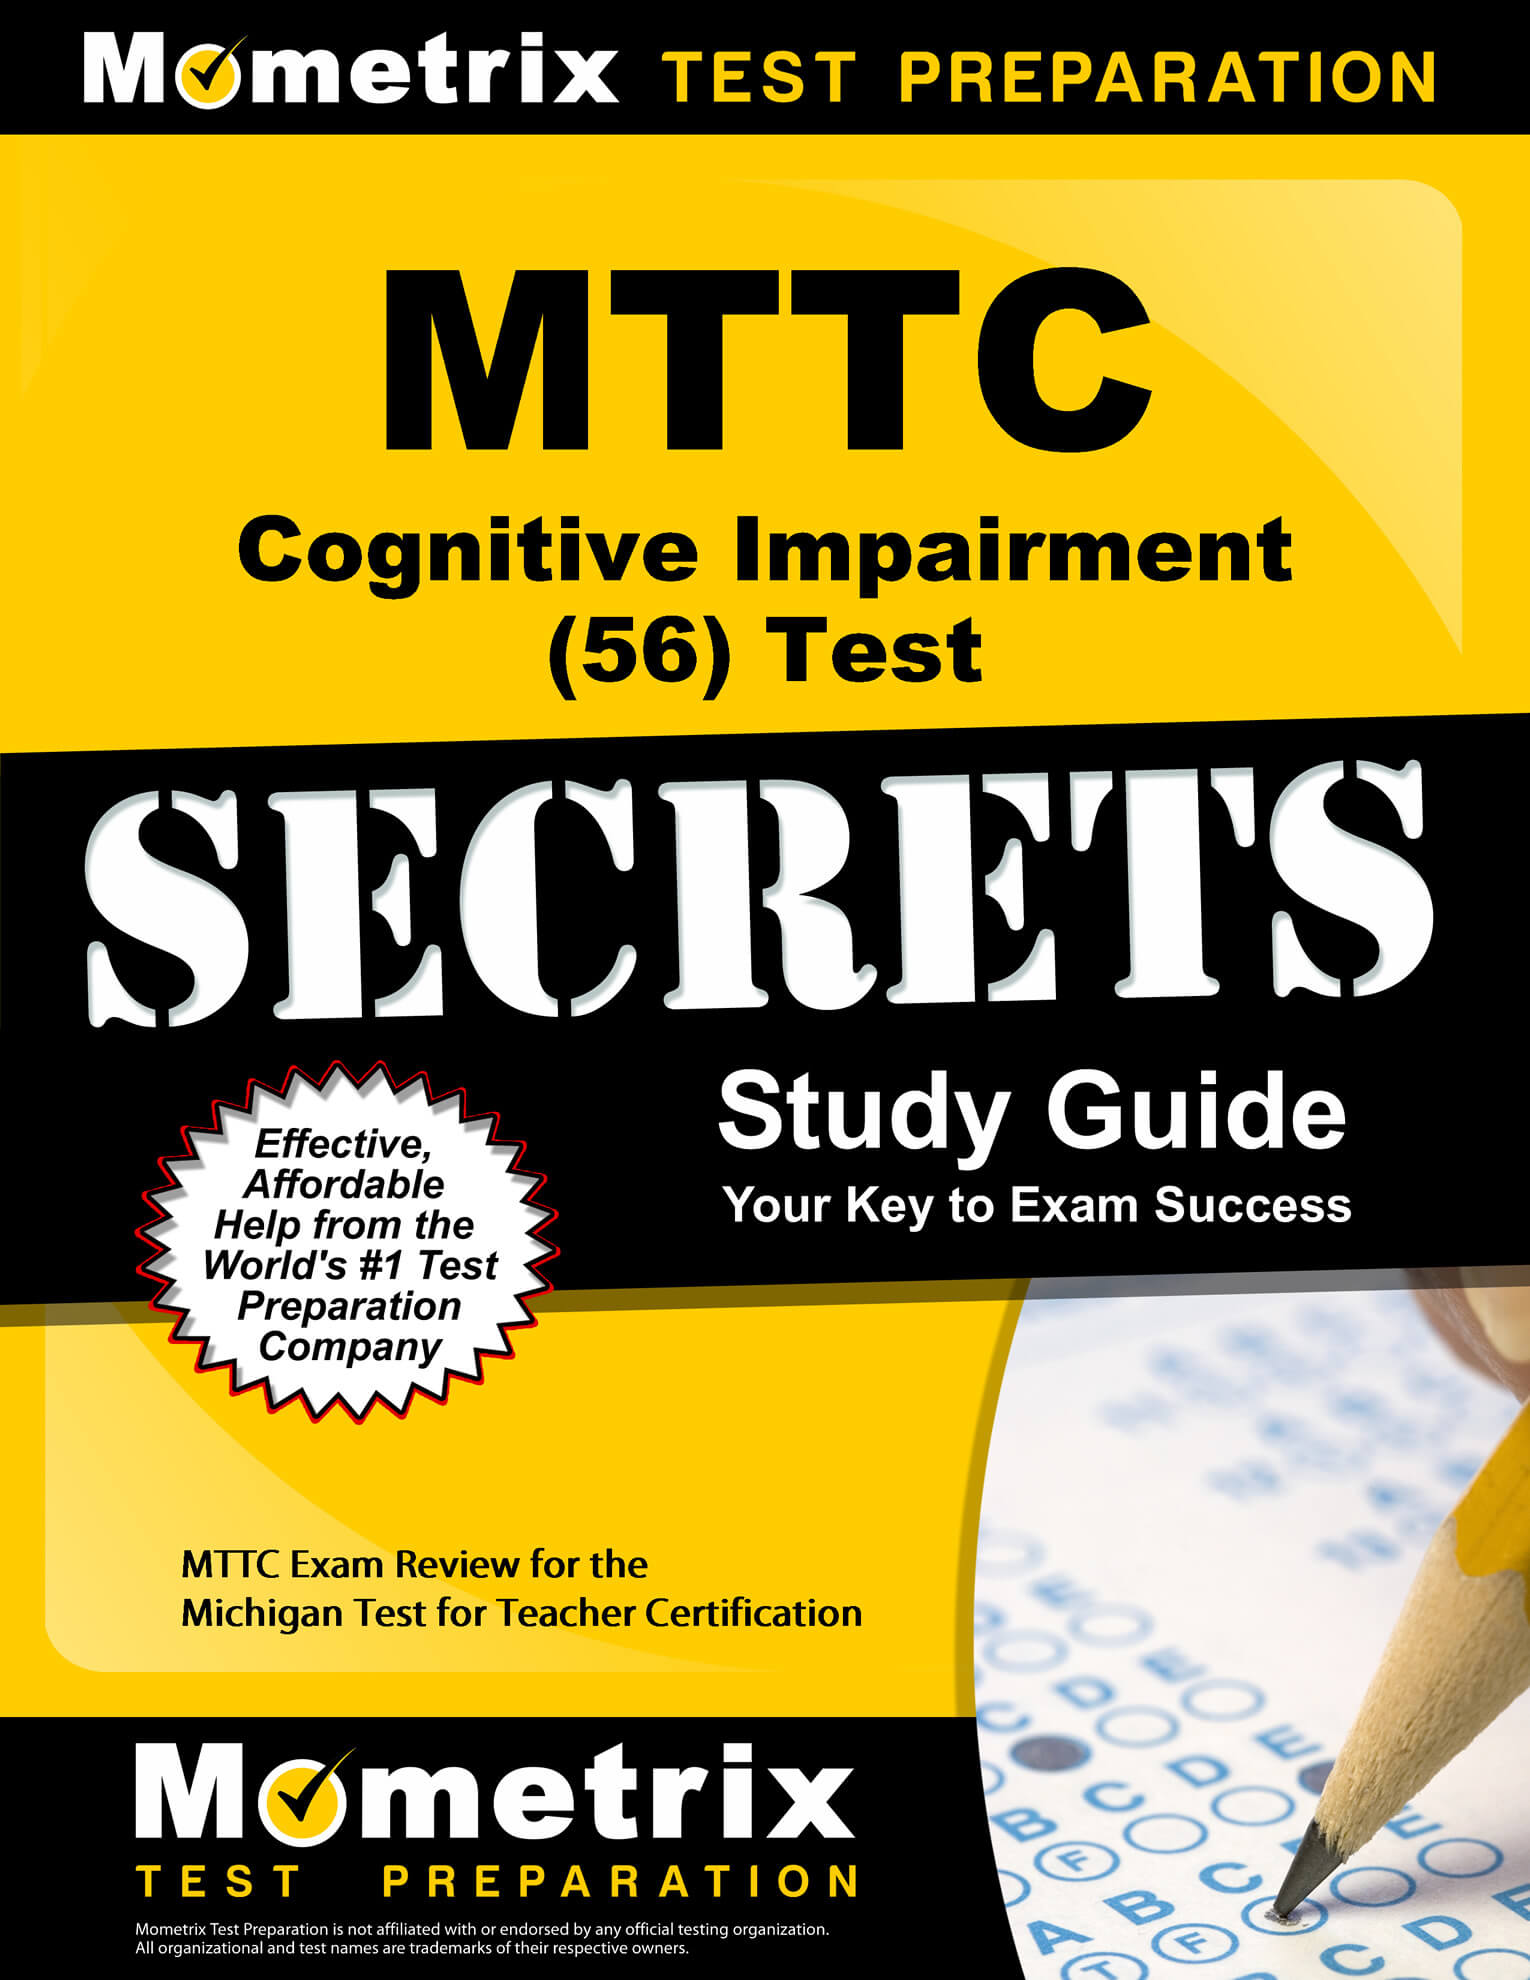 MTTC Cognitive Impairment Study Guide